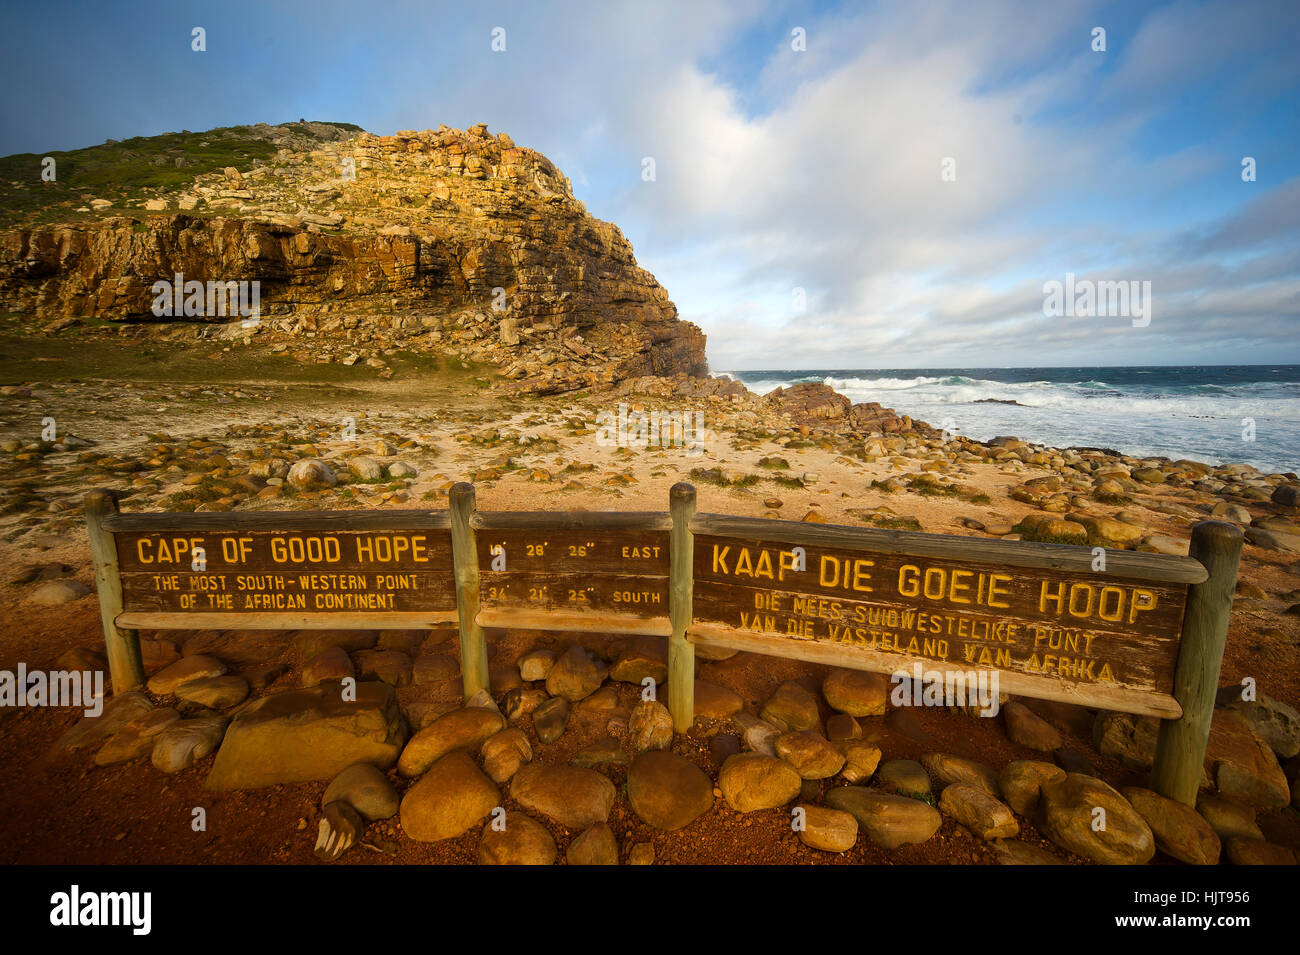 Cape of Good Hope, rocky promontory at the southern end of Cape Peninsula, South Africa. It was first sighted by - Stock Image